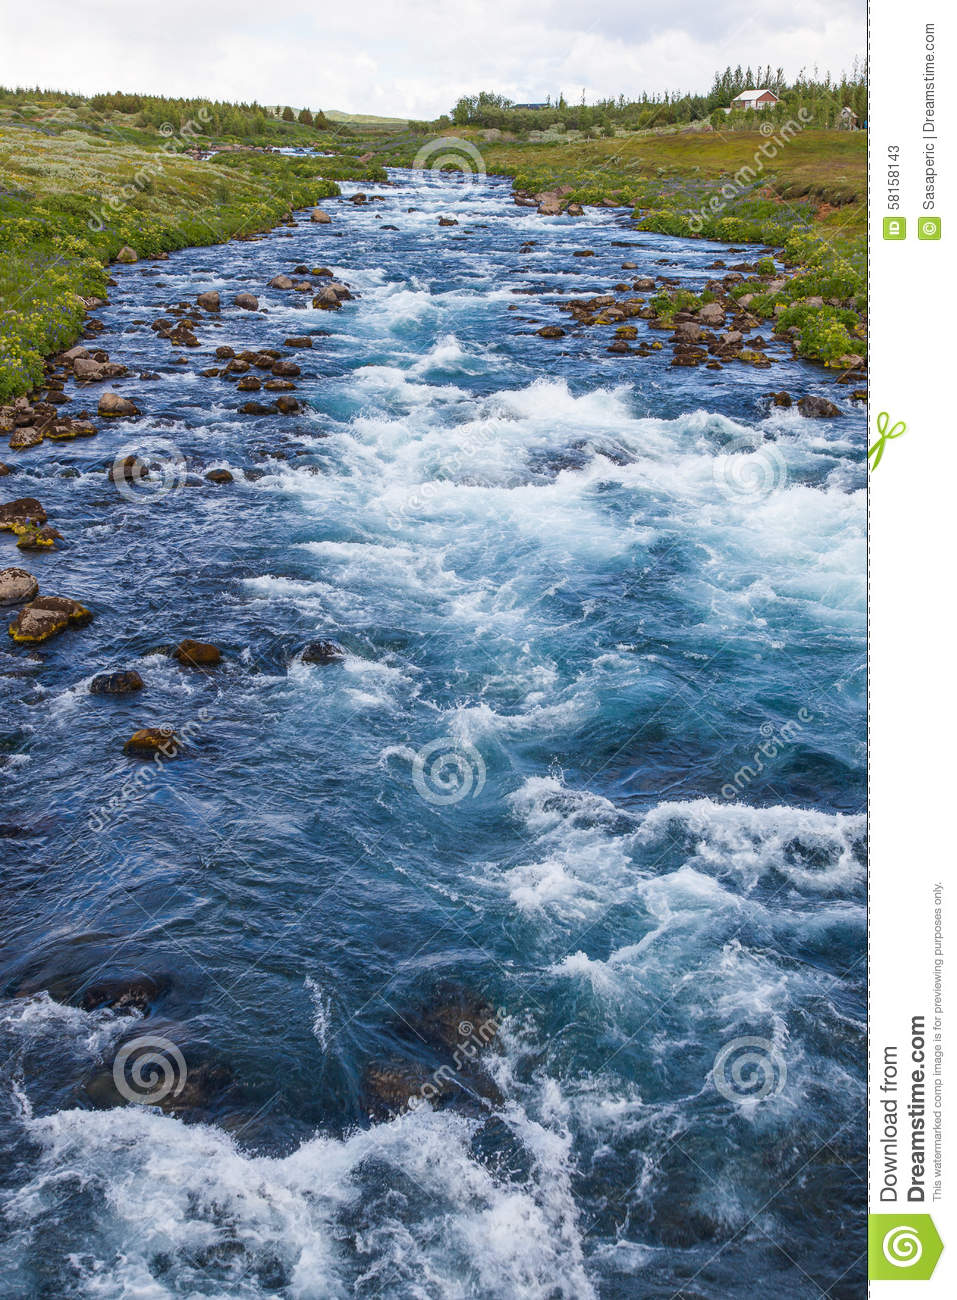 Iceland Blue River Water Stream Stock Image - Image of beauty ... on